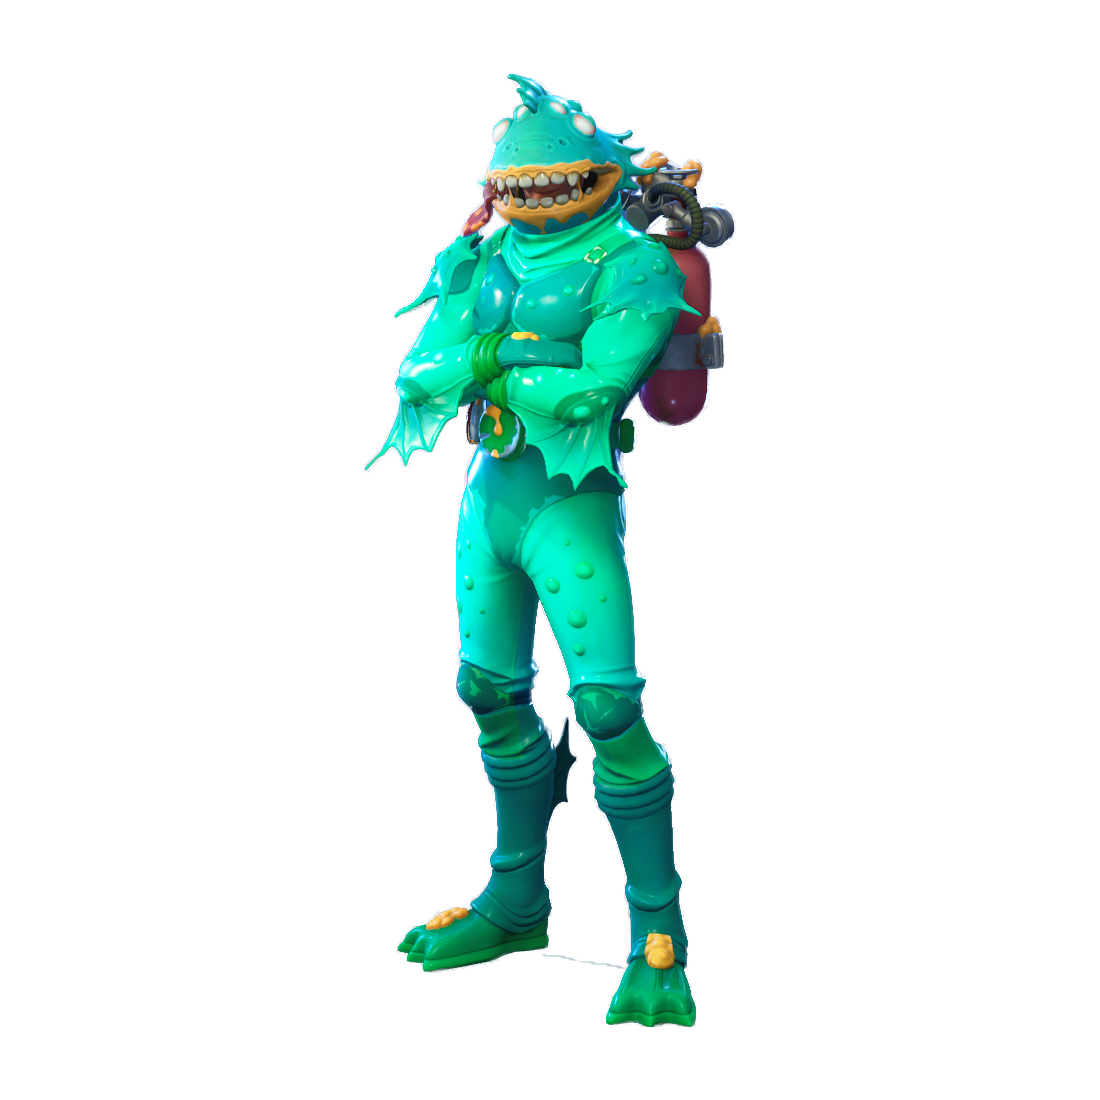 Moisty Merman - Тритон (Moisty Merman)